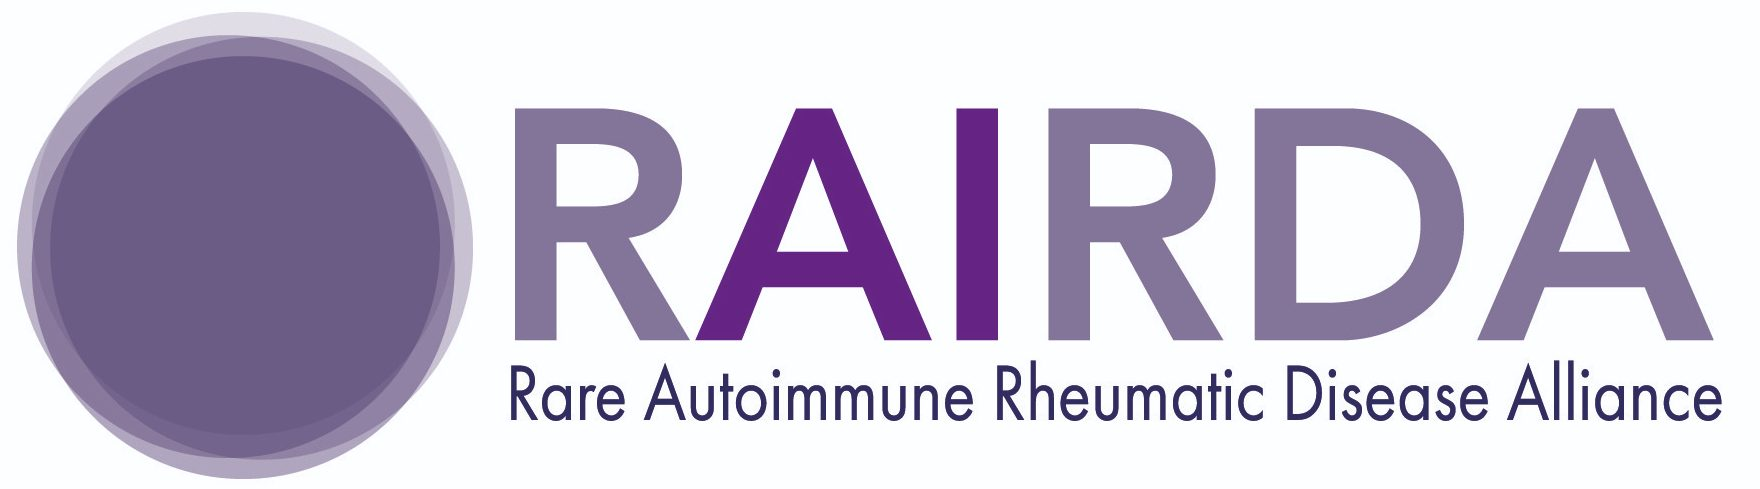 The Rare Auto-Immune Rheumatic Disease Alliance